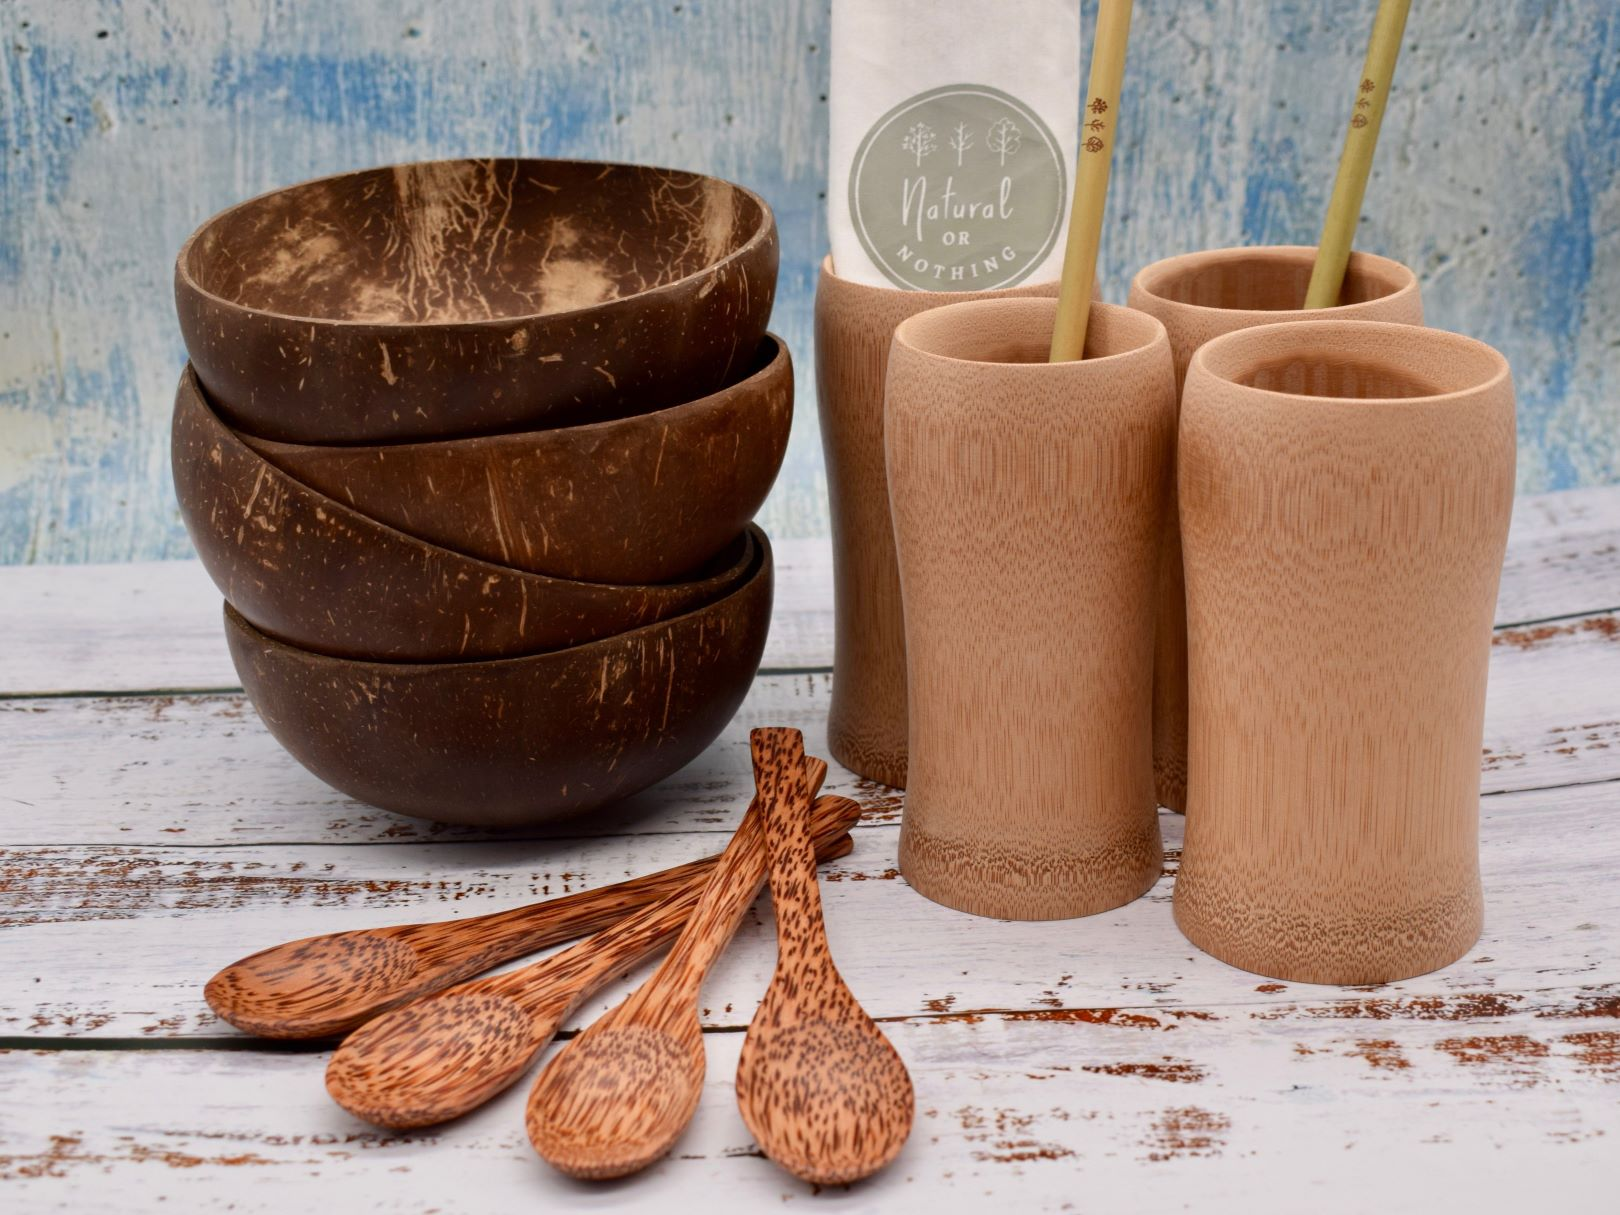 Ultimate kitchen set includes picture: 4 natural coconut bowls, 4 bamboo cups, pack of 10 bamboo straws with bag and cleaner, 4 wood spoons